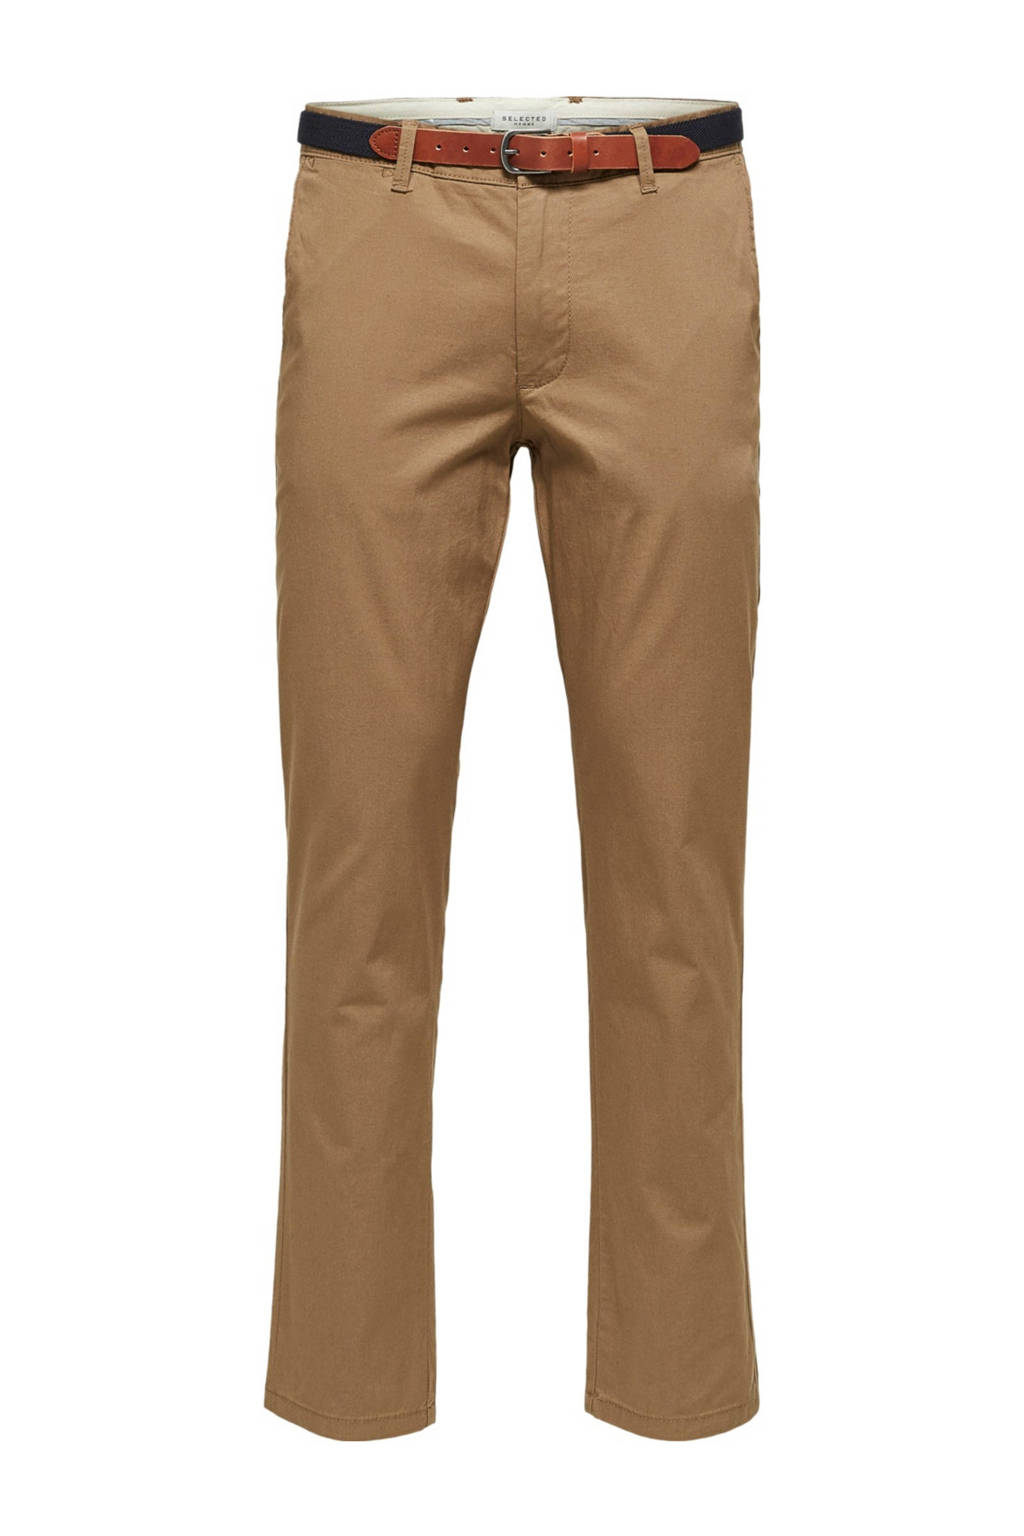 SELECTED HOMME slim fit chino, Donker camel